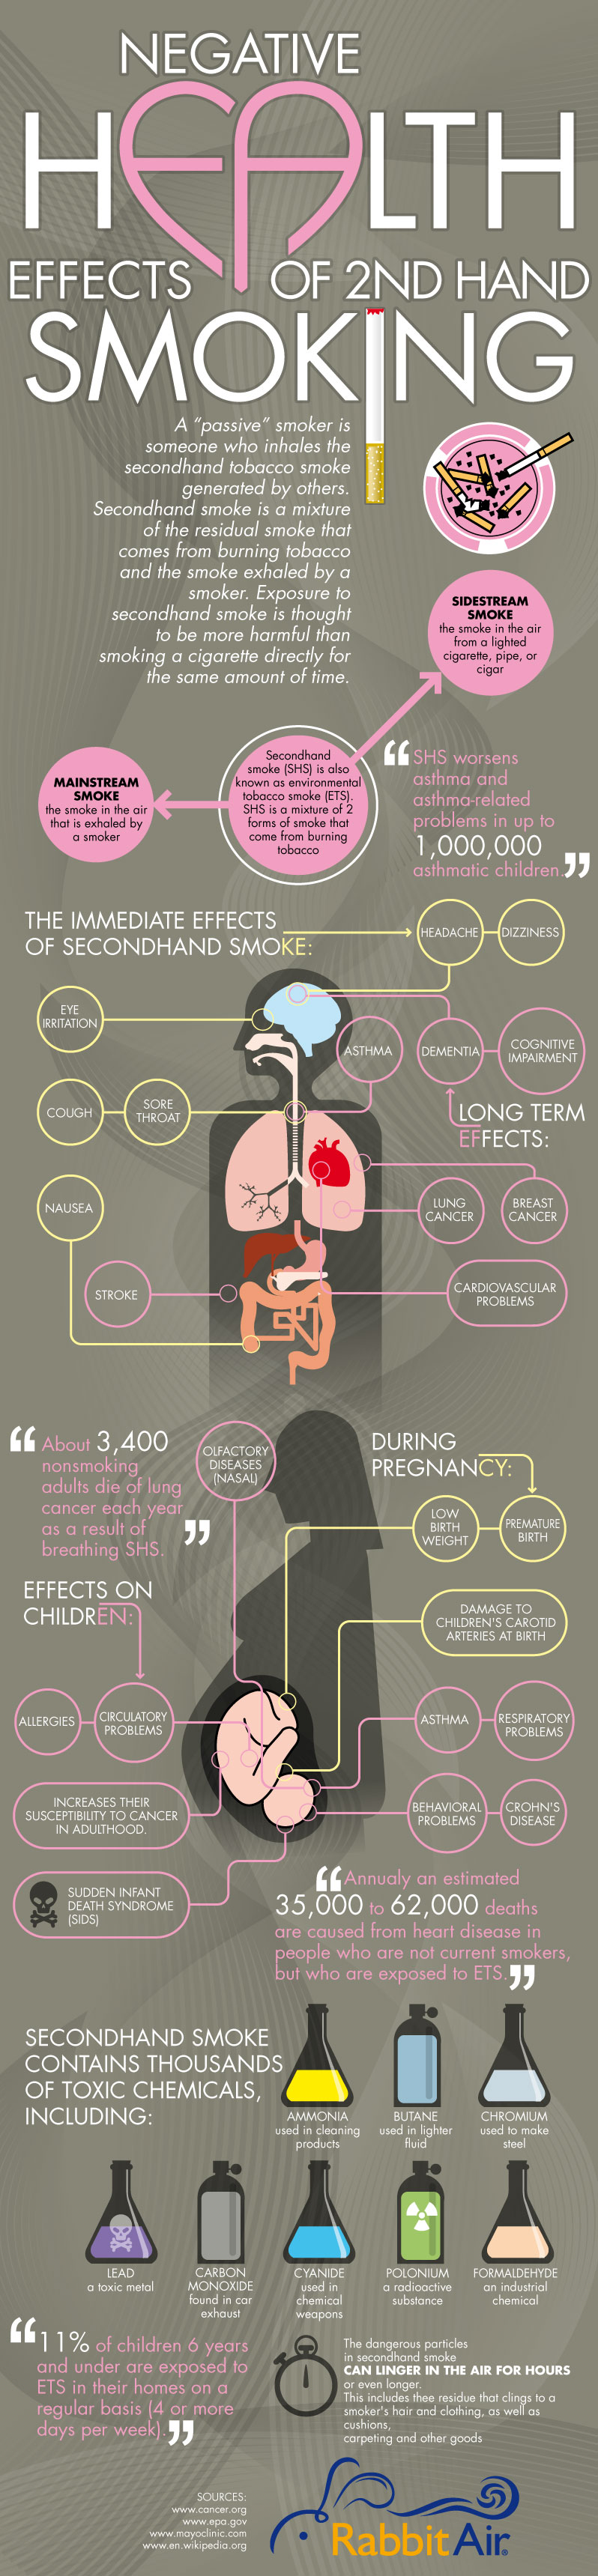 Health Effects Of Passive Smoking Infographic